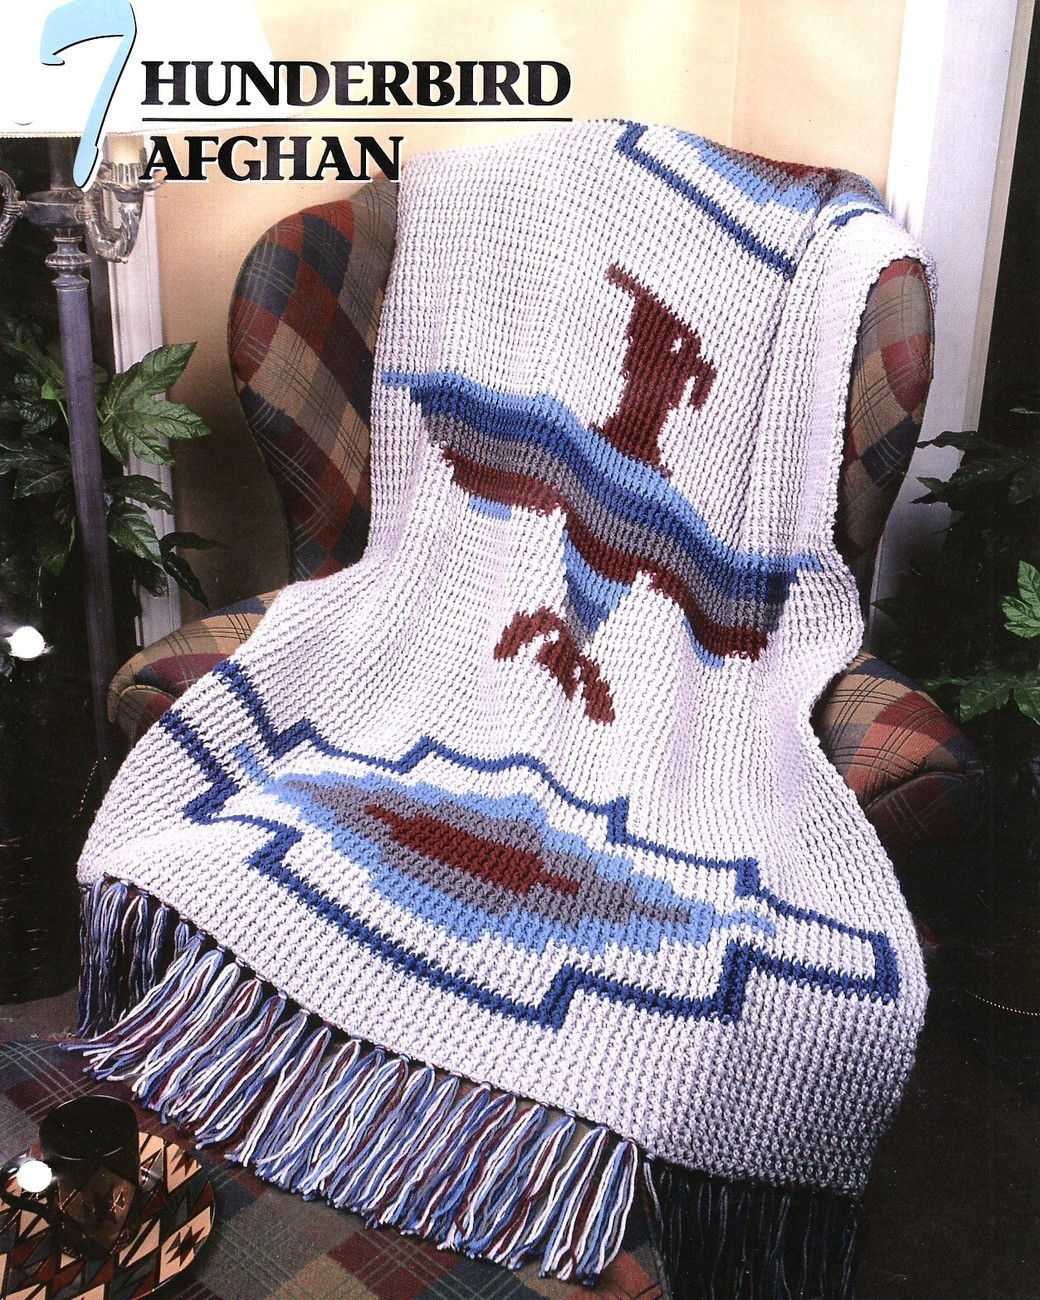 Thunderbird Afghan Crochet Pattern Southwest Indian Blanket Throw ...